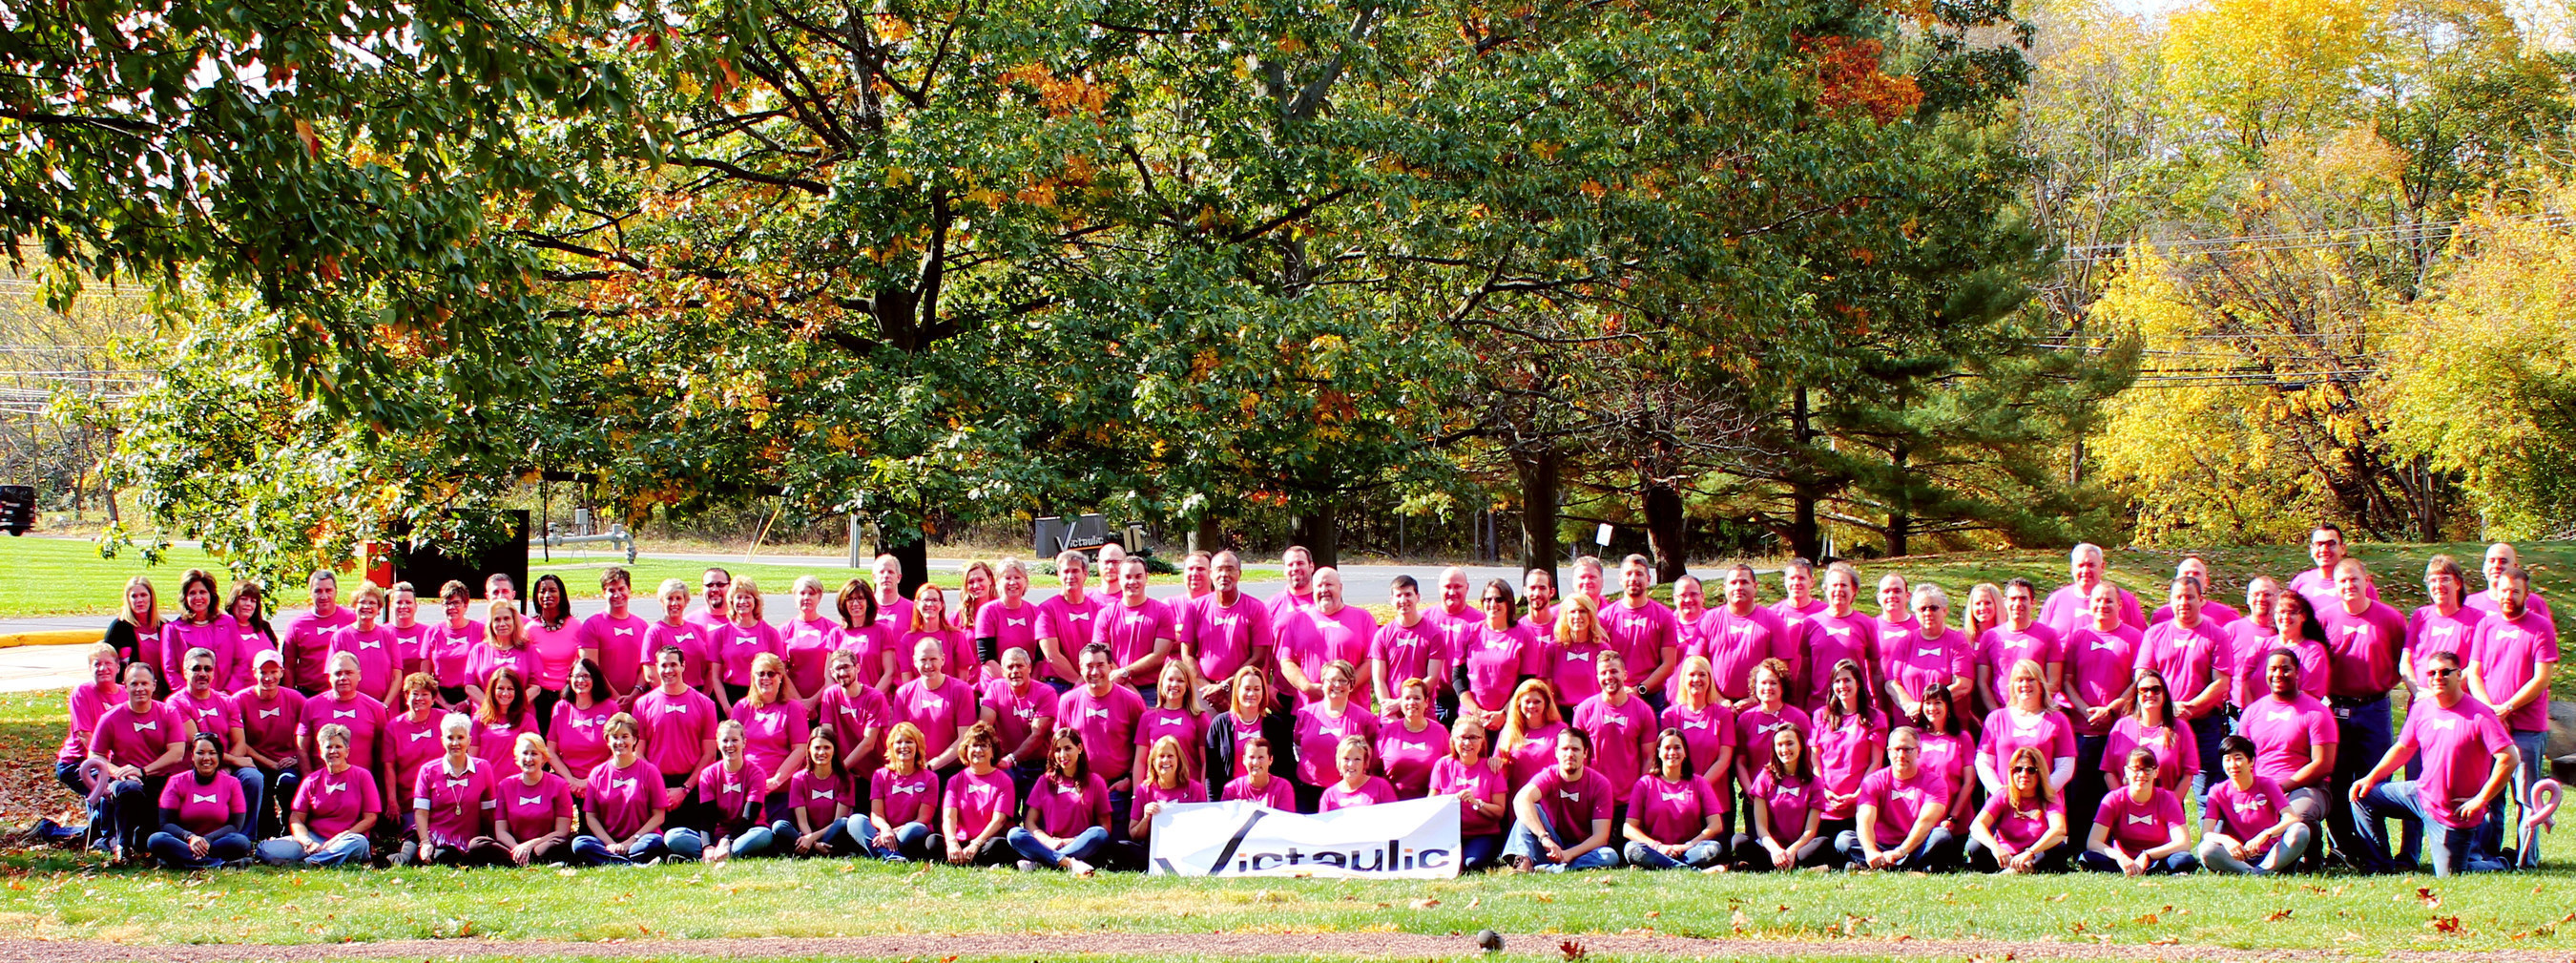 Victaulic, the leading global manufacturer of pipe joining solutions, raised over $50K during the month of October for the American Cancer Society.